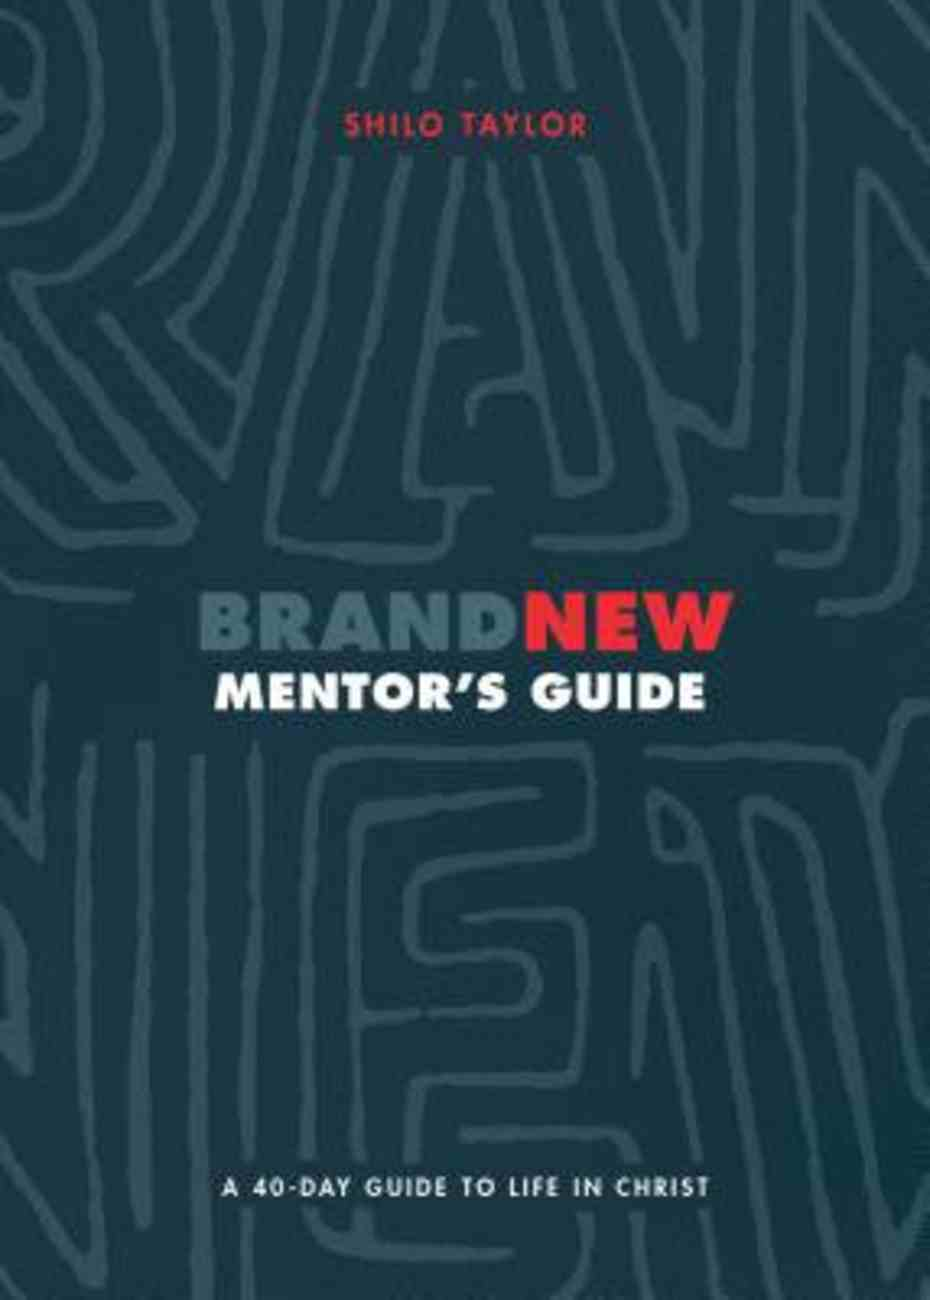 Brand New: A 40-Day Guide to Life in Christ (Mentor's Guide) Paperback